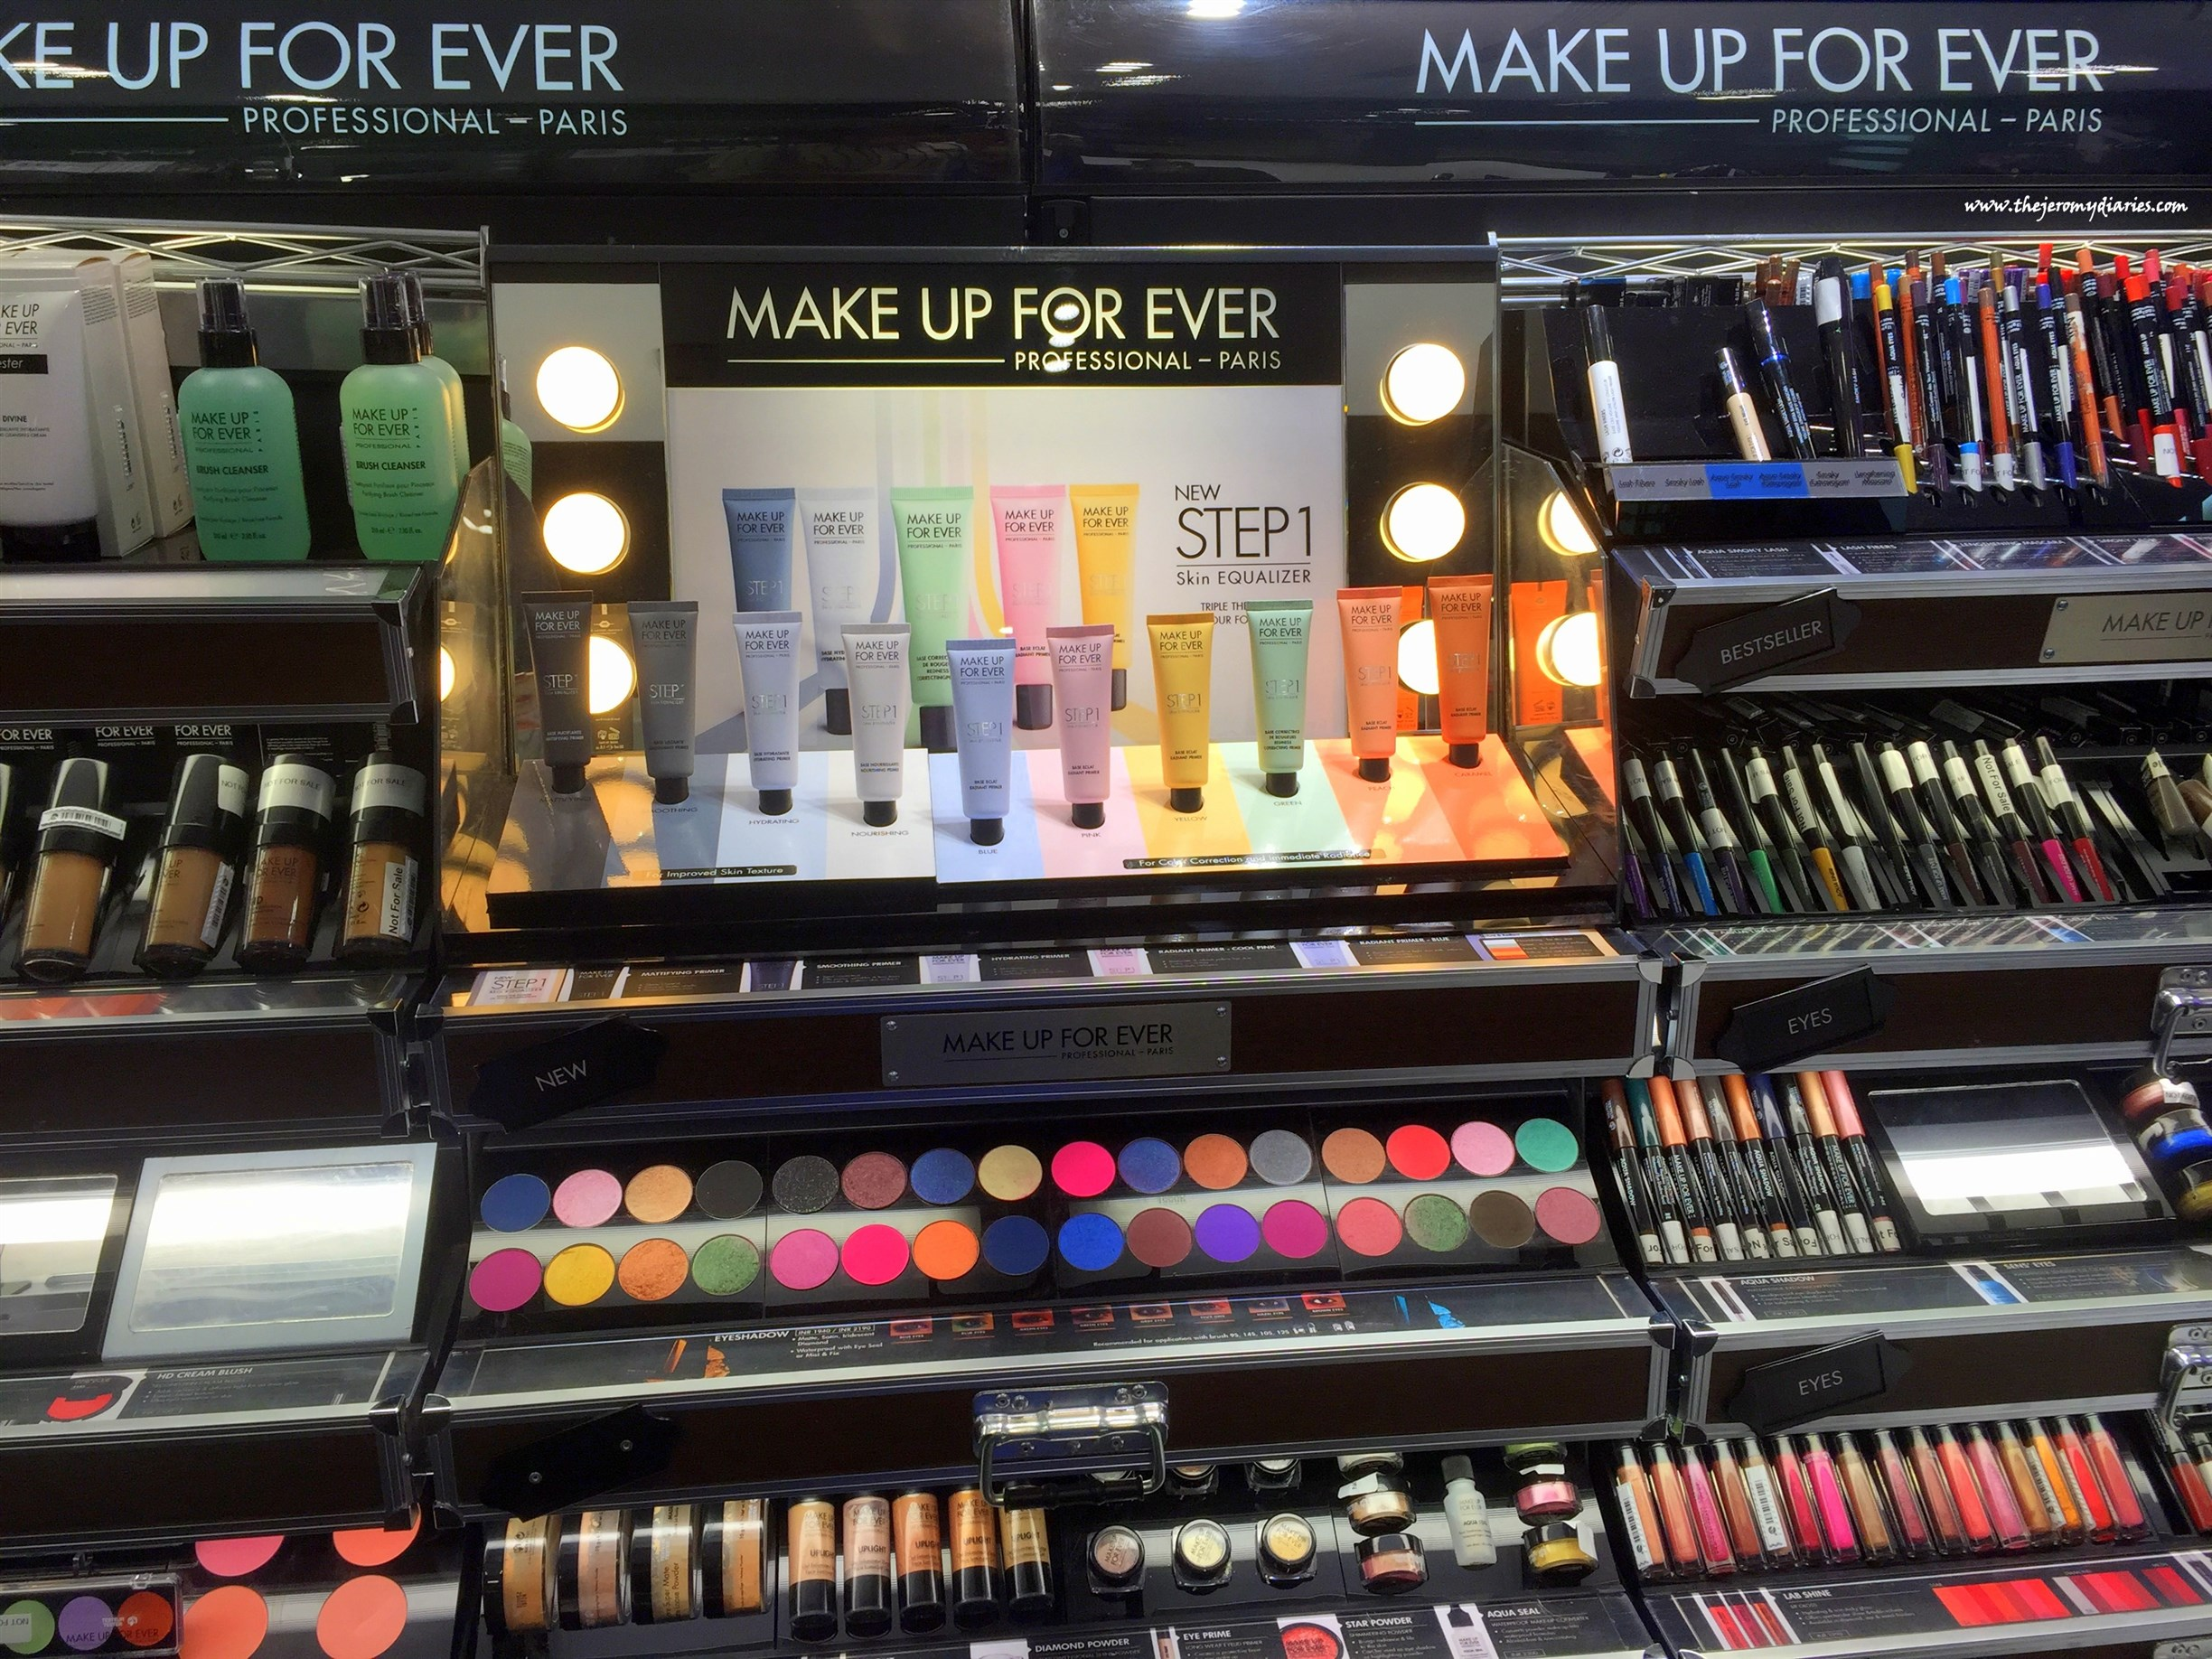 make up forever in bangalore at sephora store bangalore the jeromy diaries (2448 x 1836)